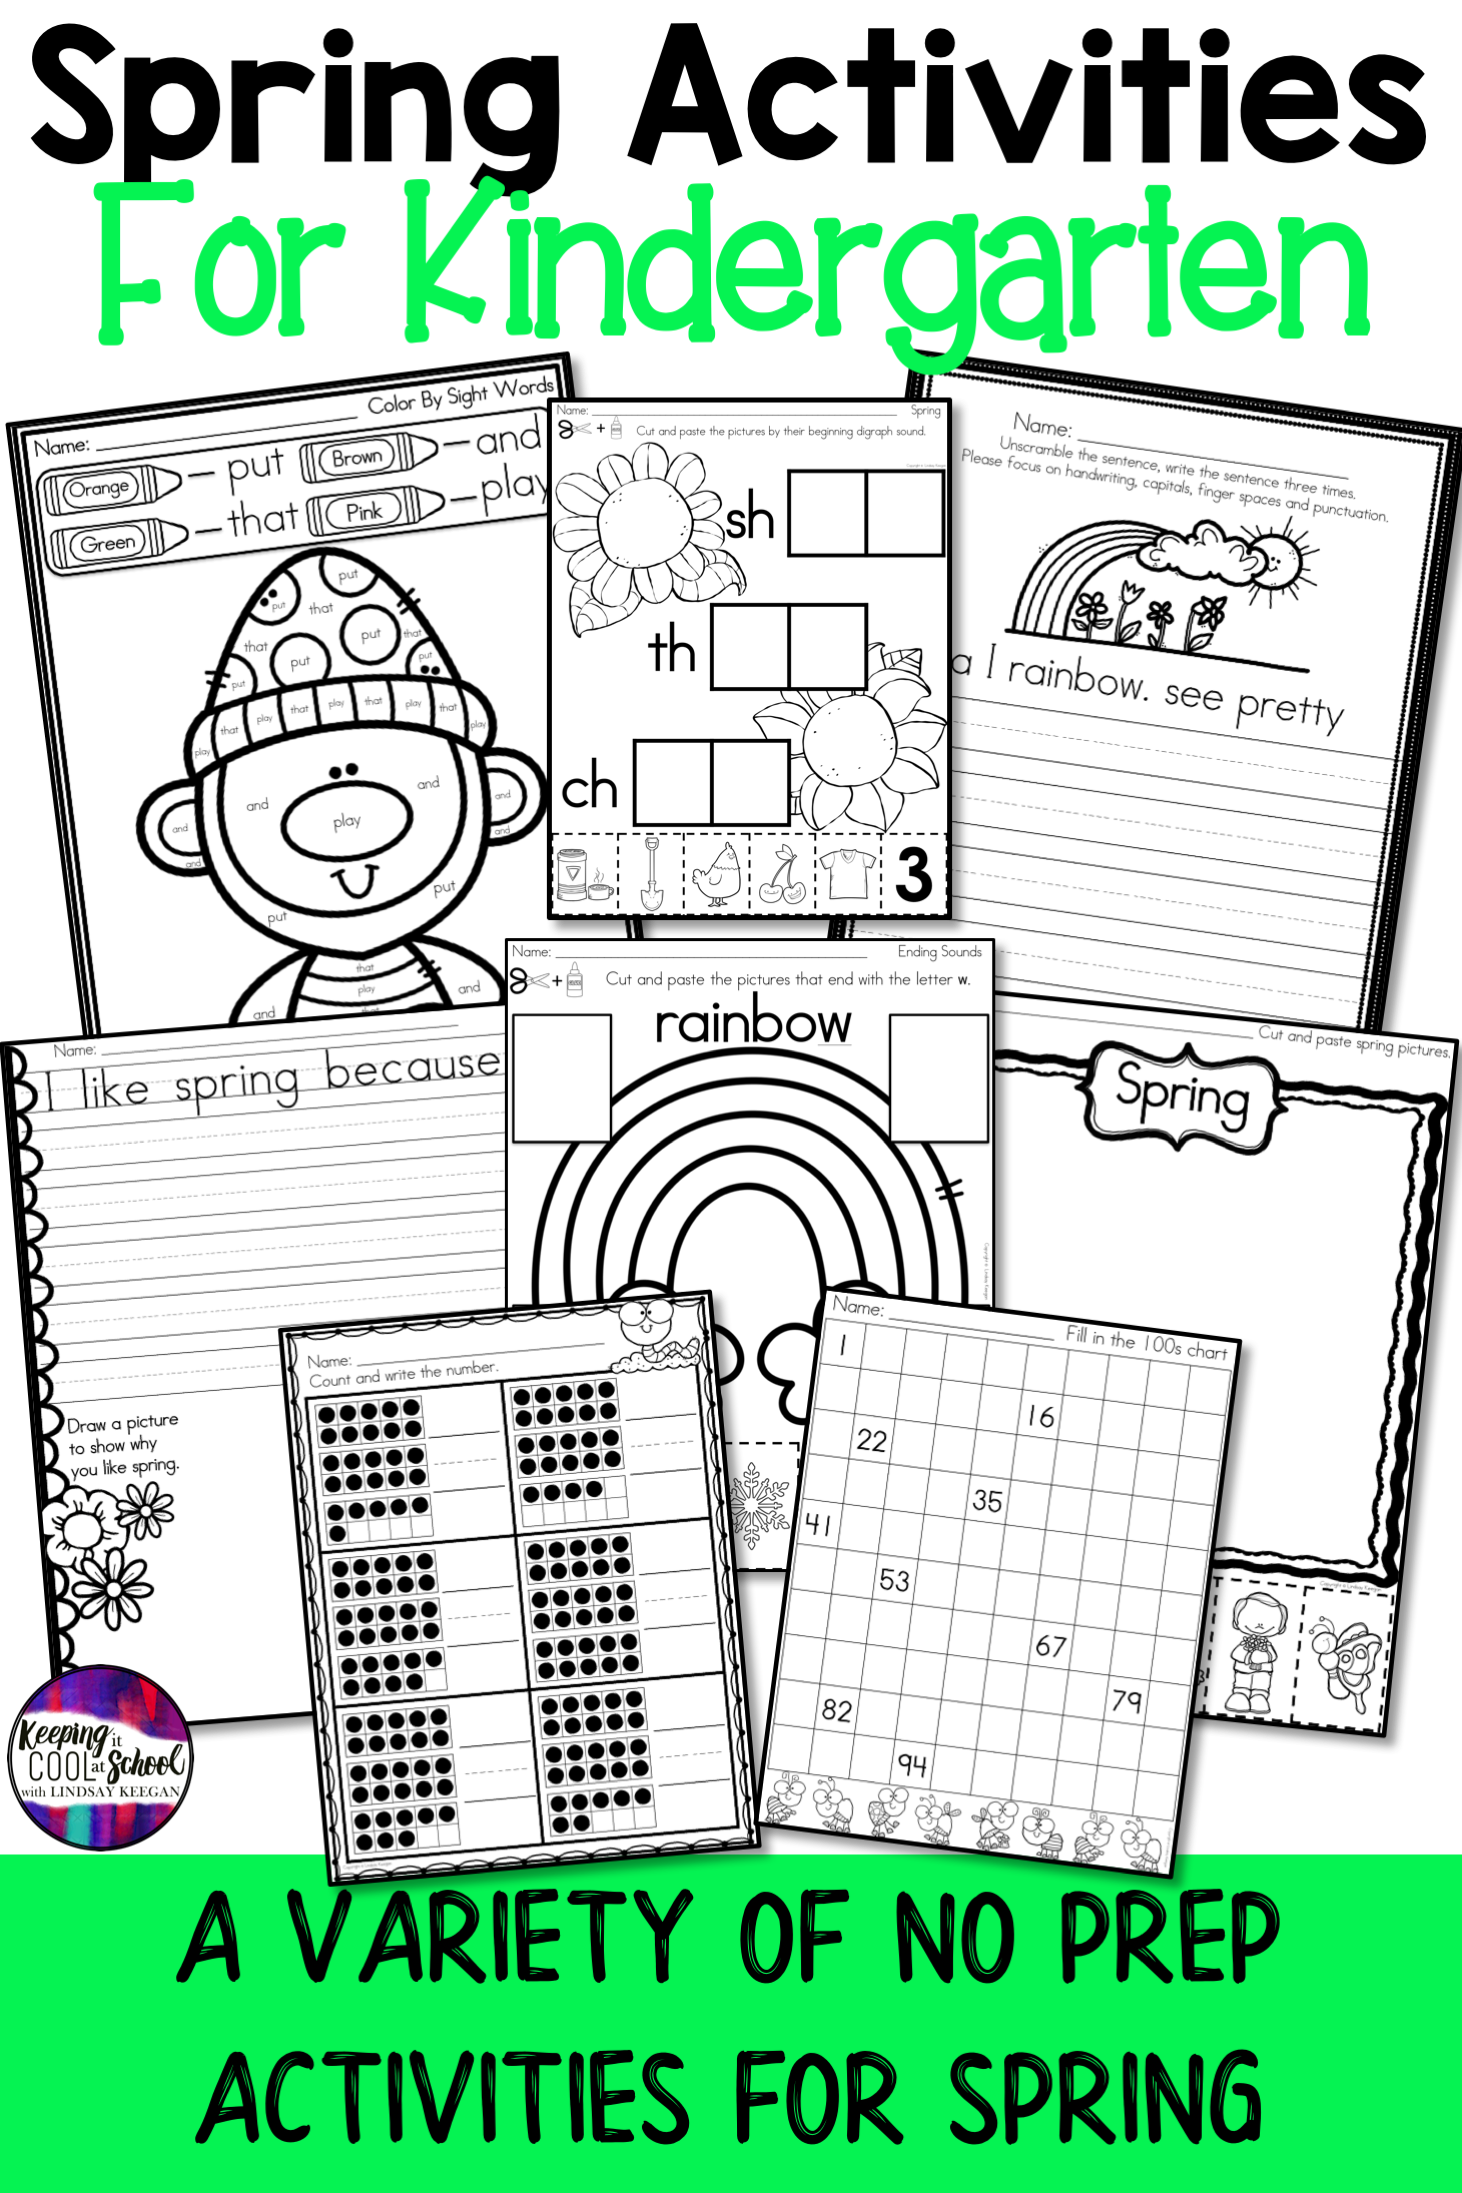 For 24hrs Spring Worksheets And Activities For